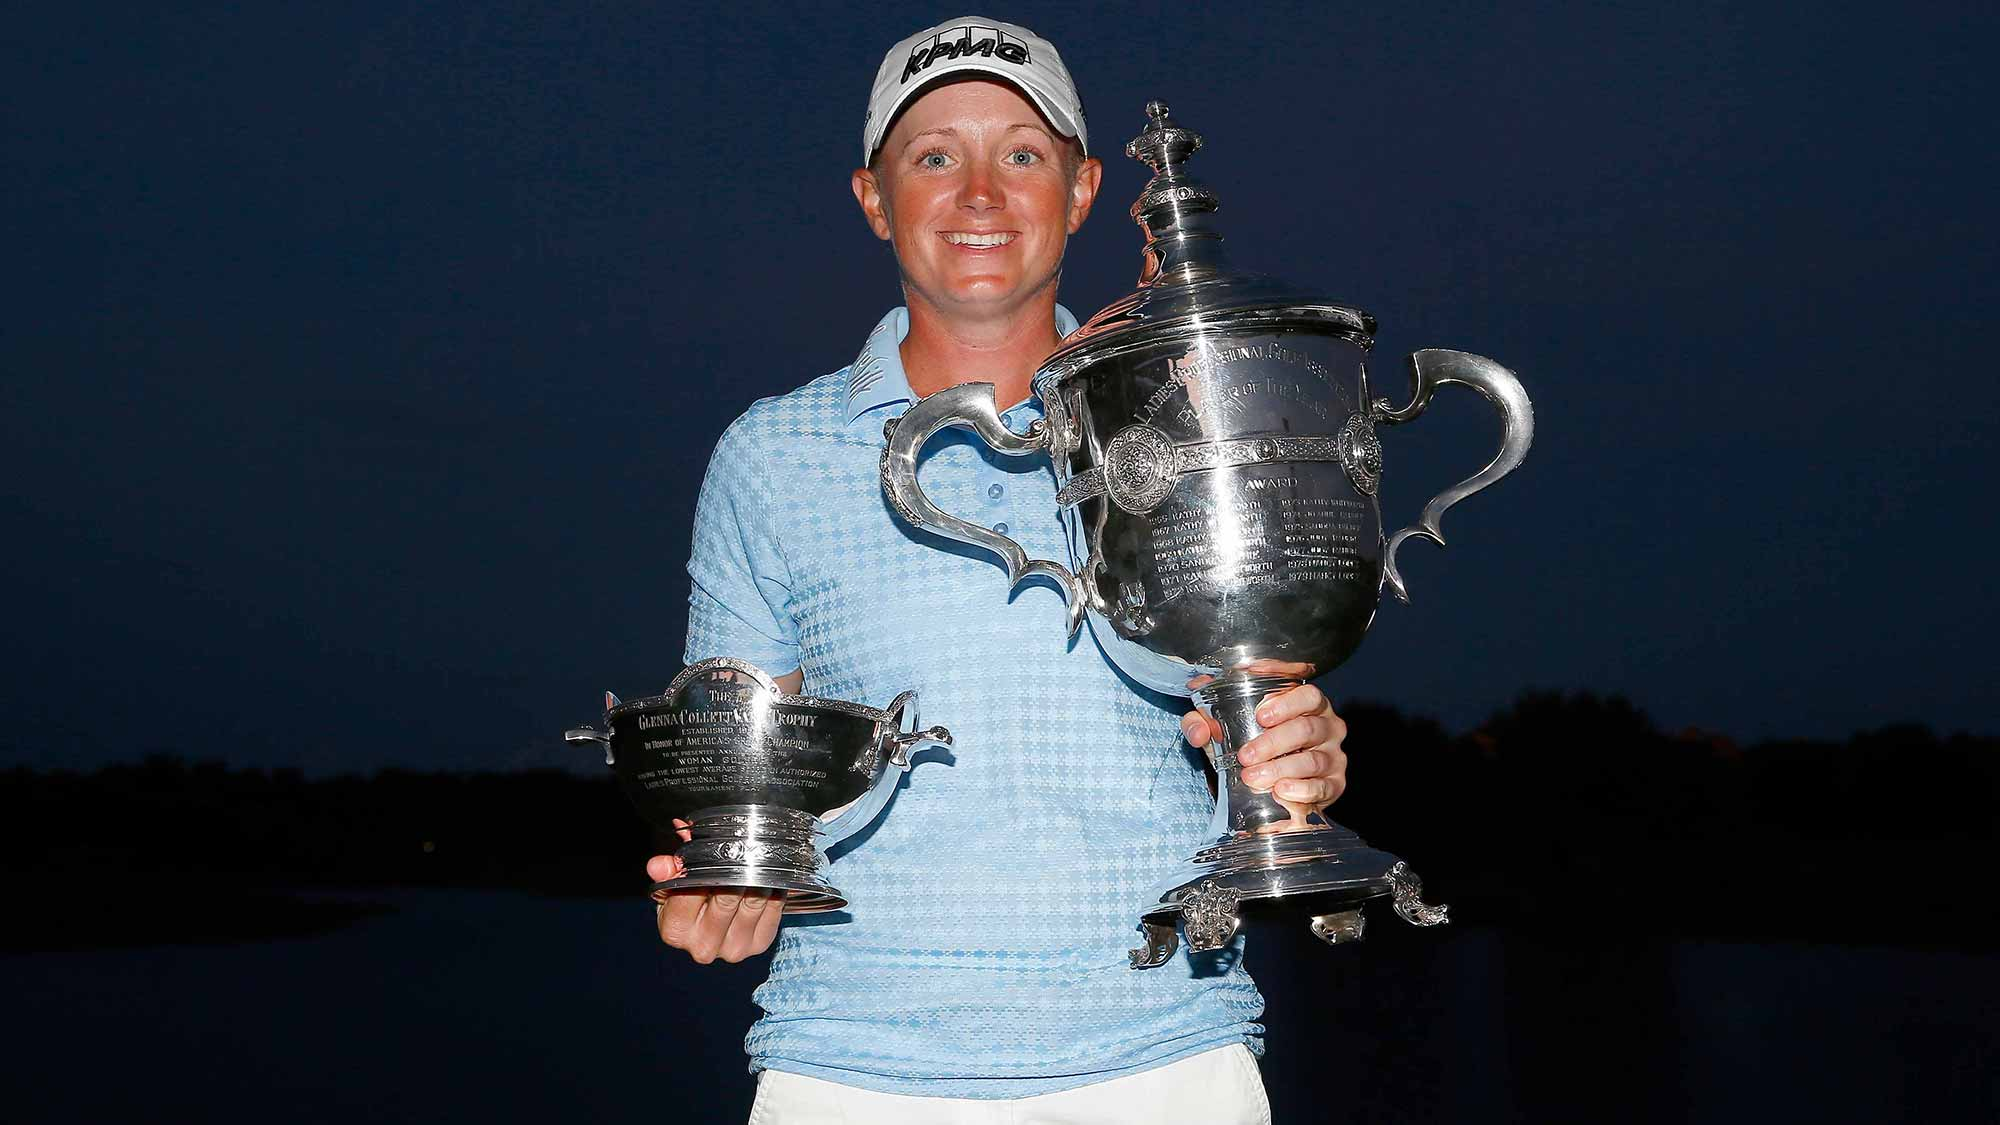 Stacy Lewis after clinching Vare Trophy and Player of the Year